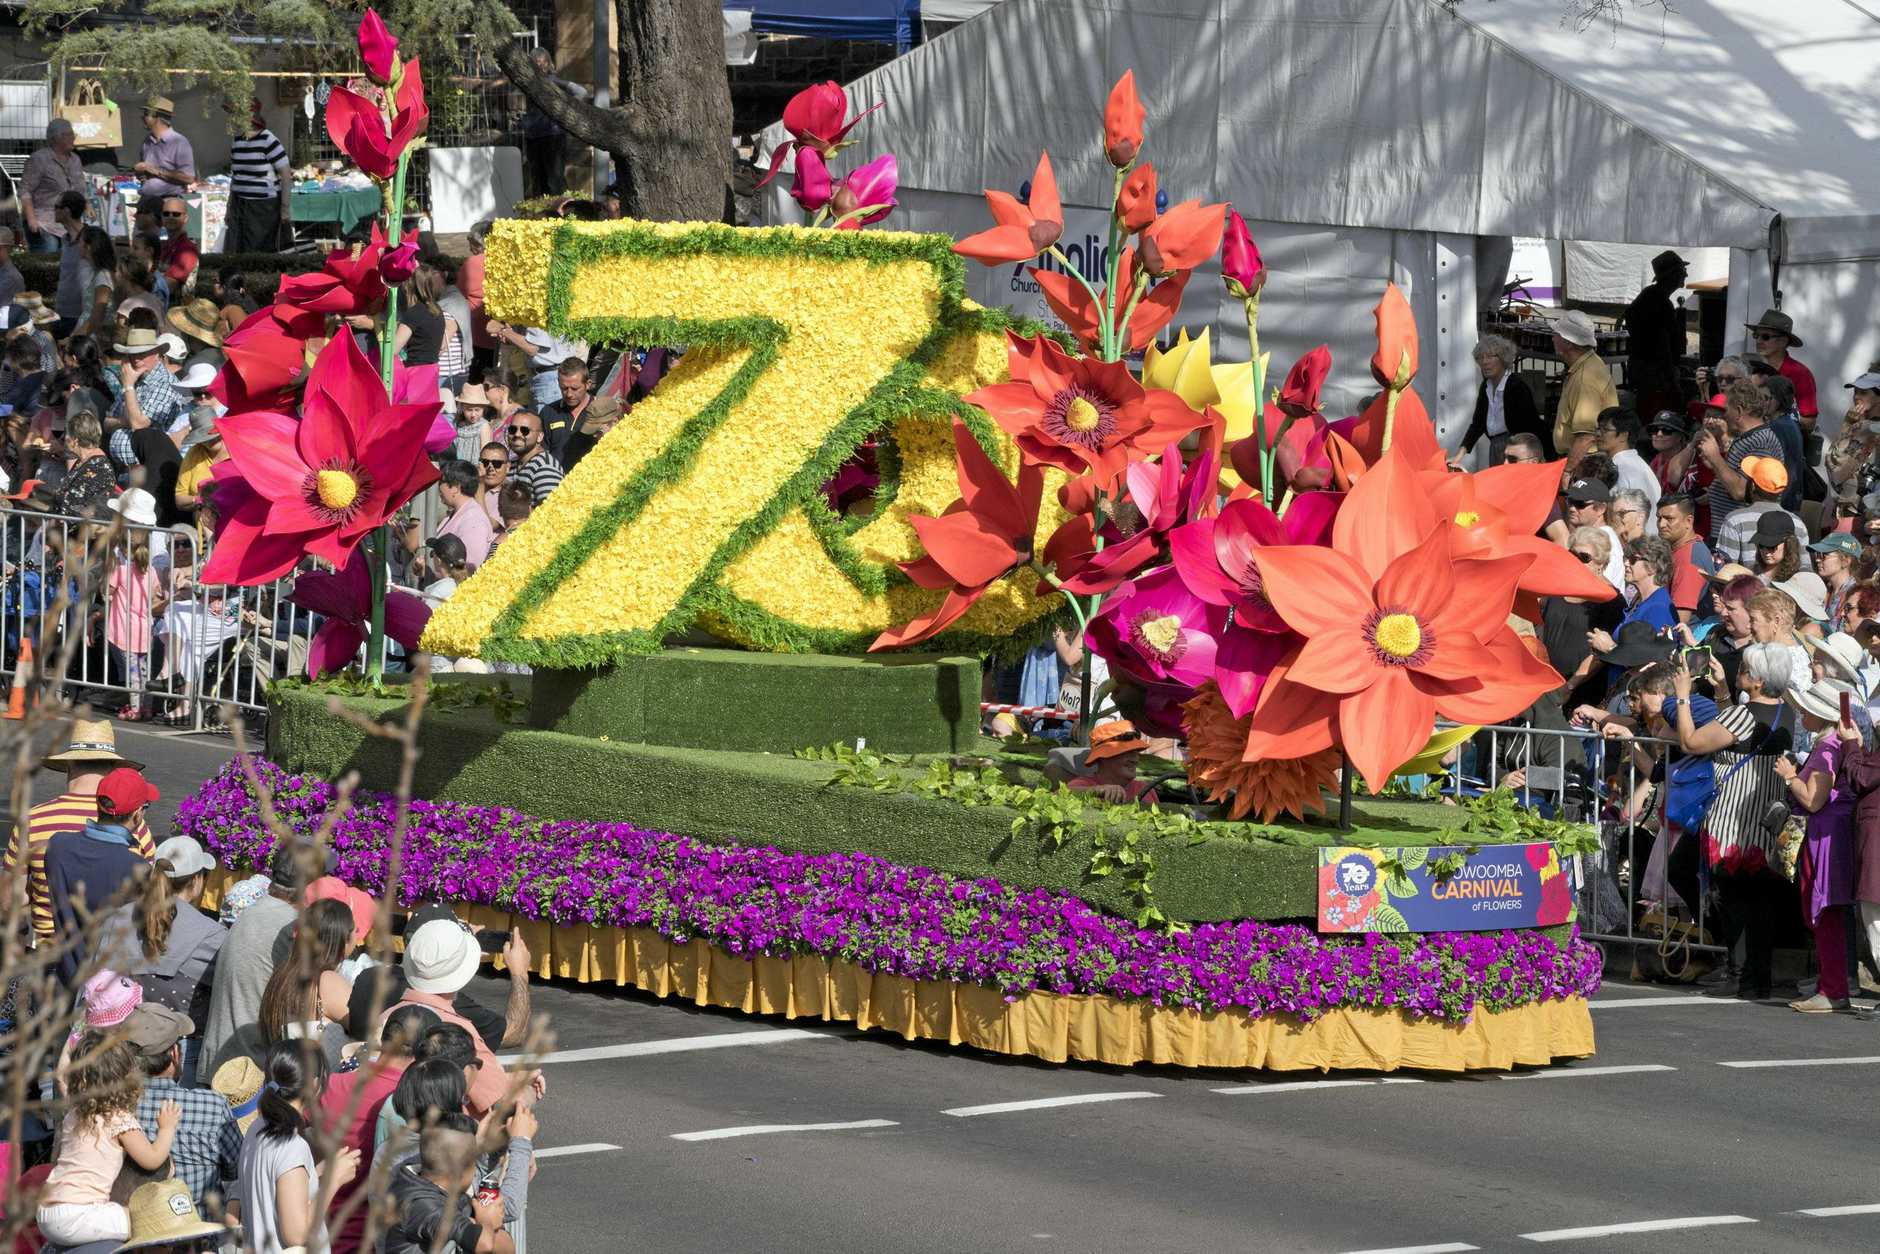 Toowoomba Regional Council float. 2019 Grand Central Floral Parade. Saturday, 21st Sep, 2019.